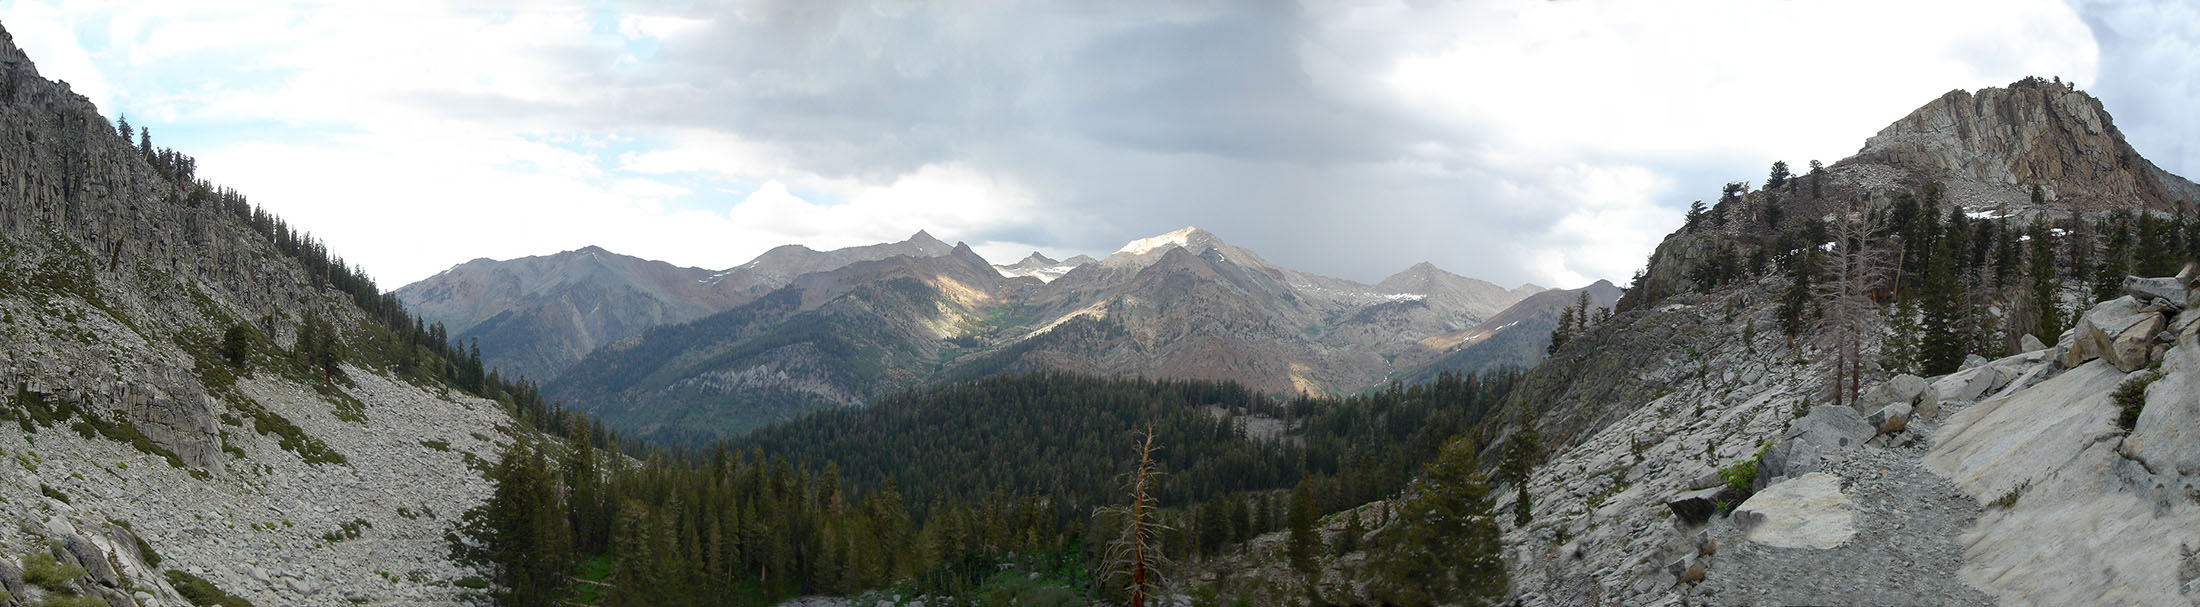 Panorama of Eagle Creek's drainage, looking down into Mineral King Valley